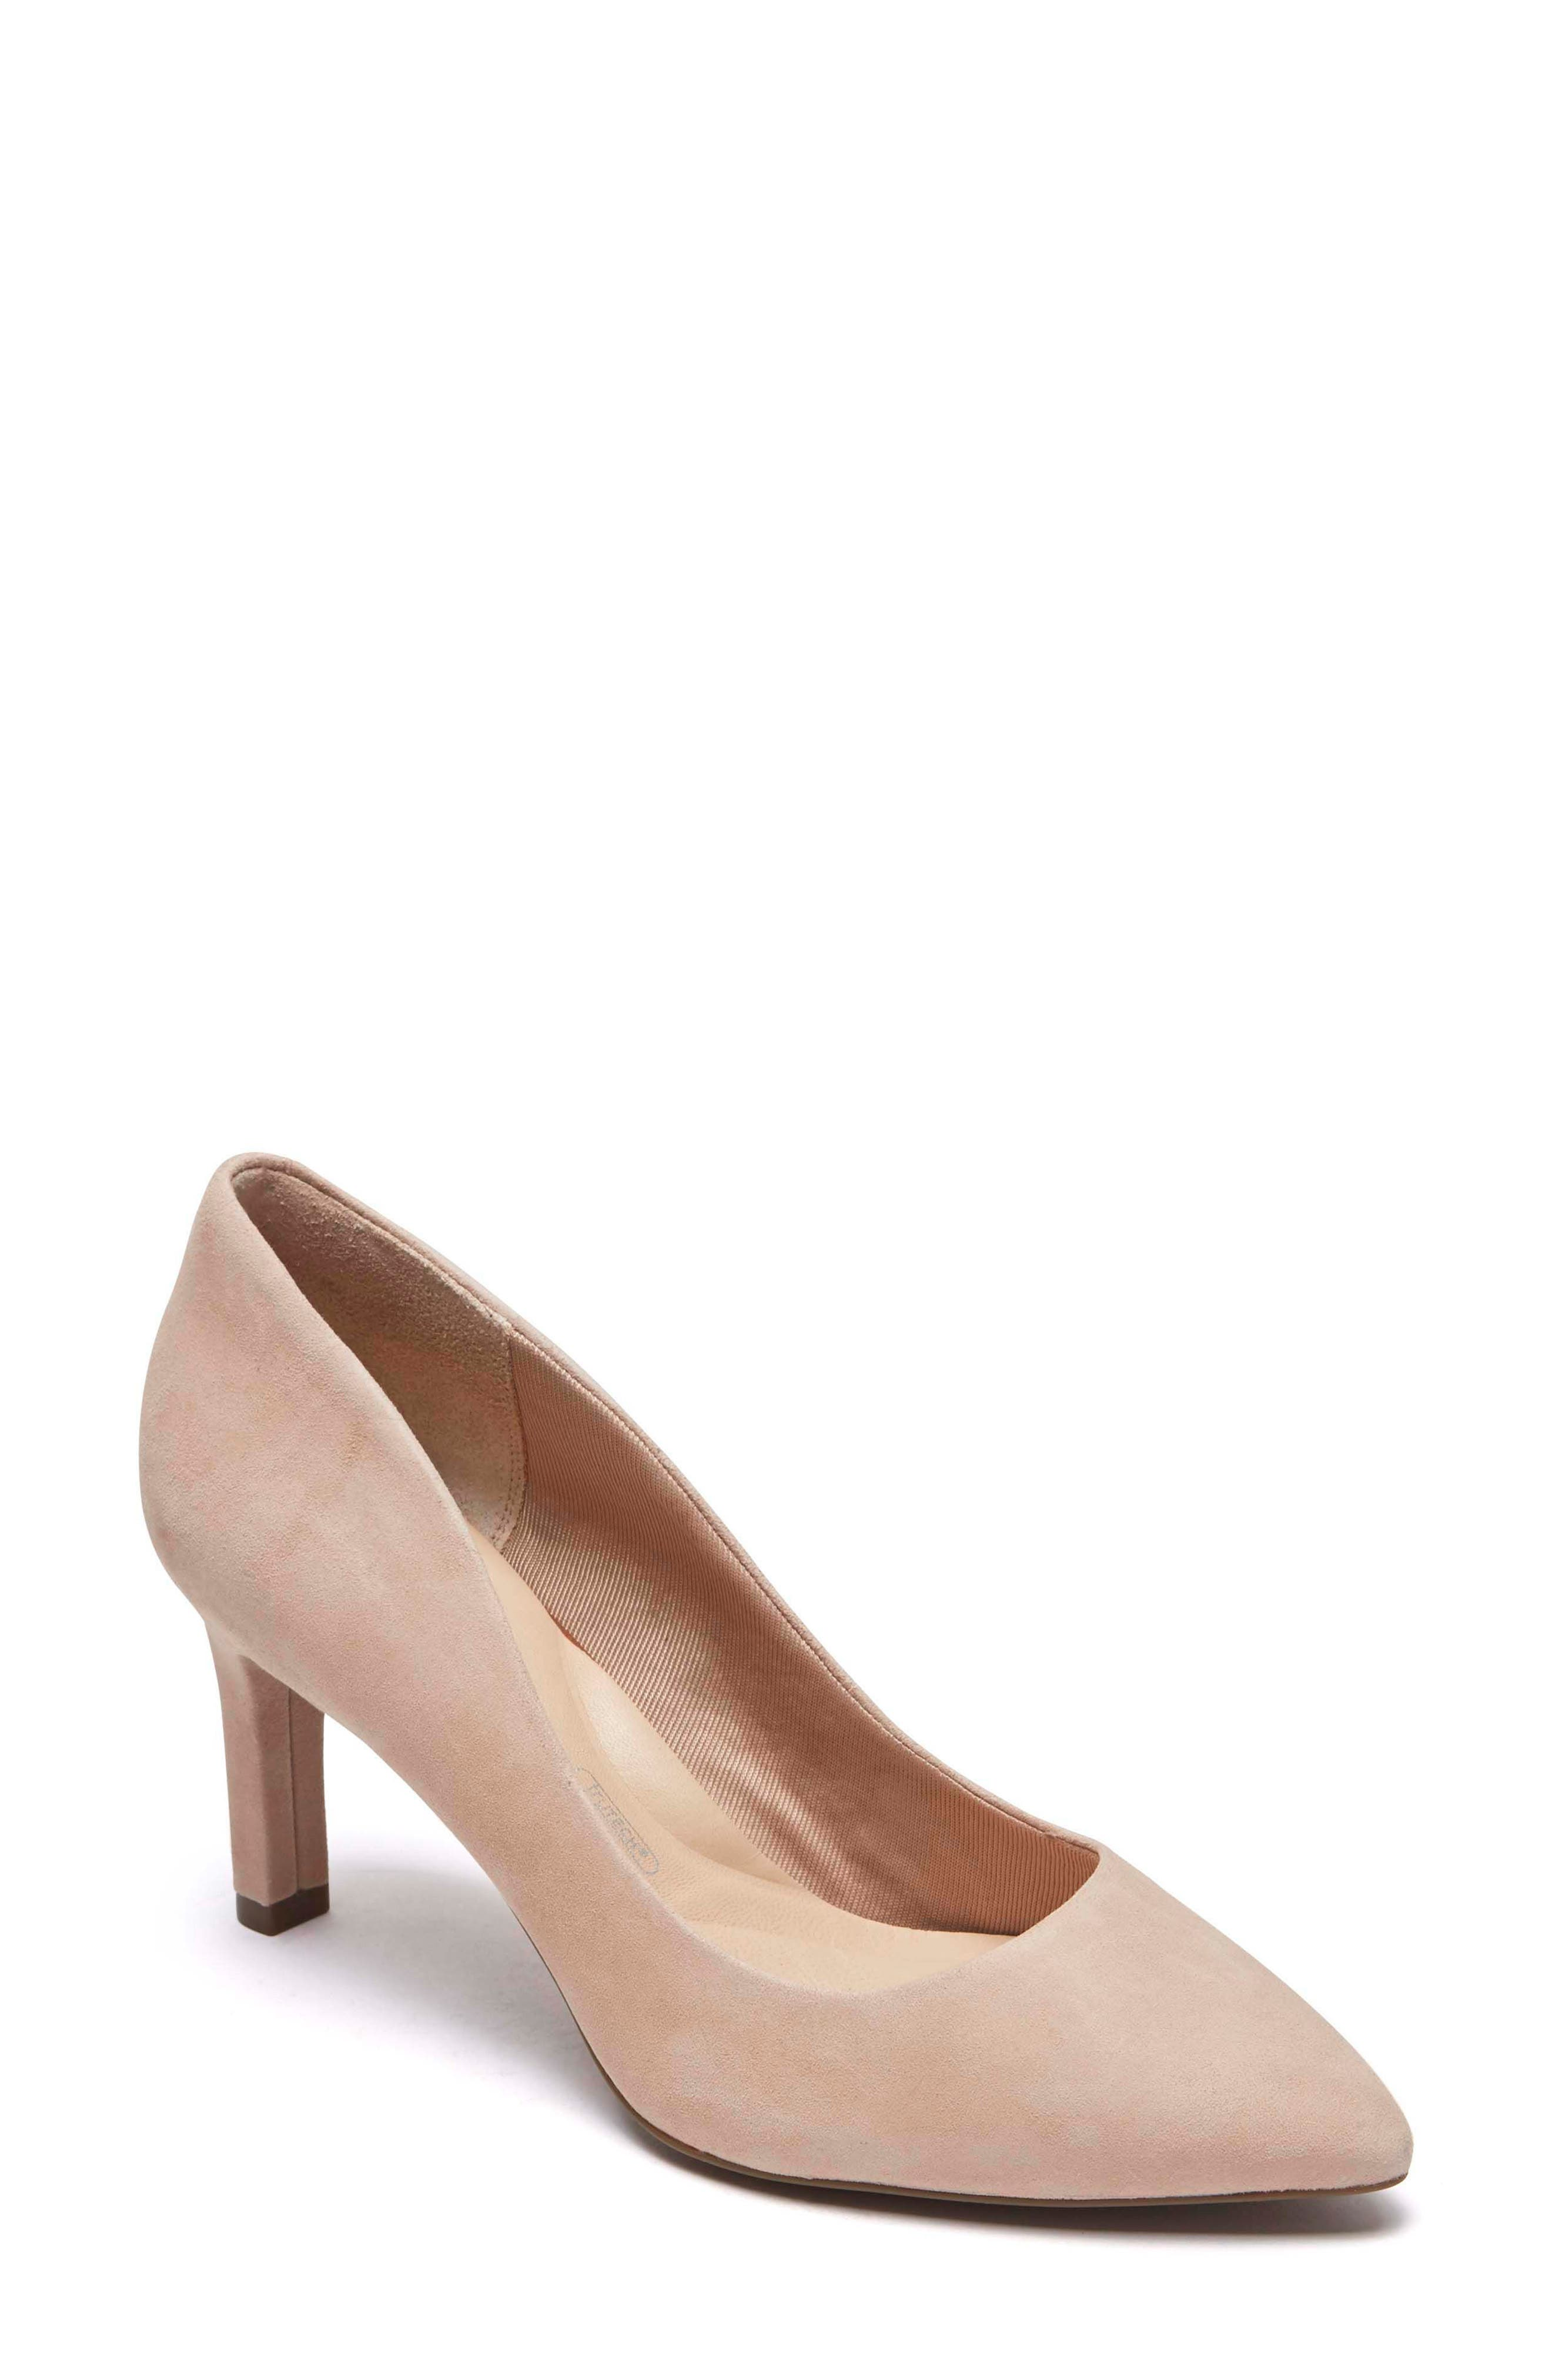 Rockport Total Motion Luxe Valerie Pump, Pink